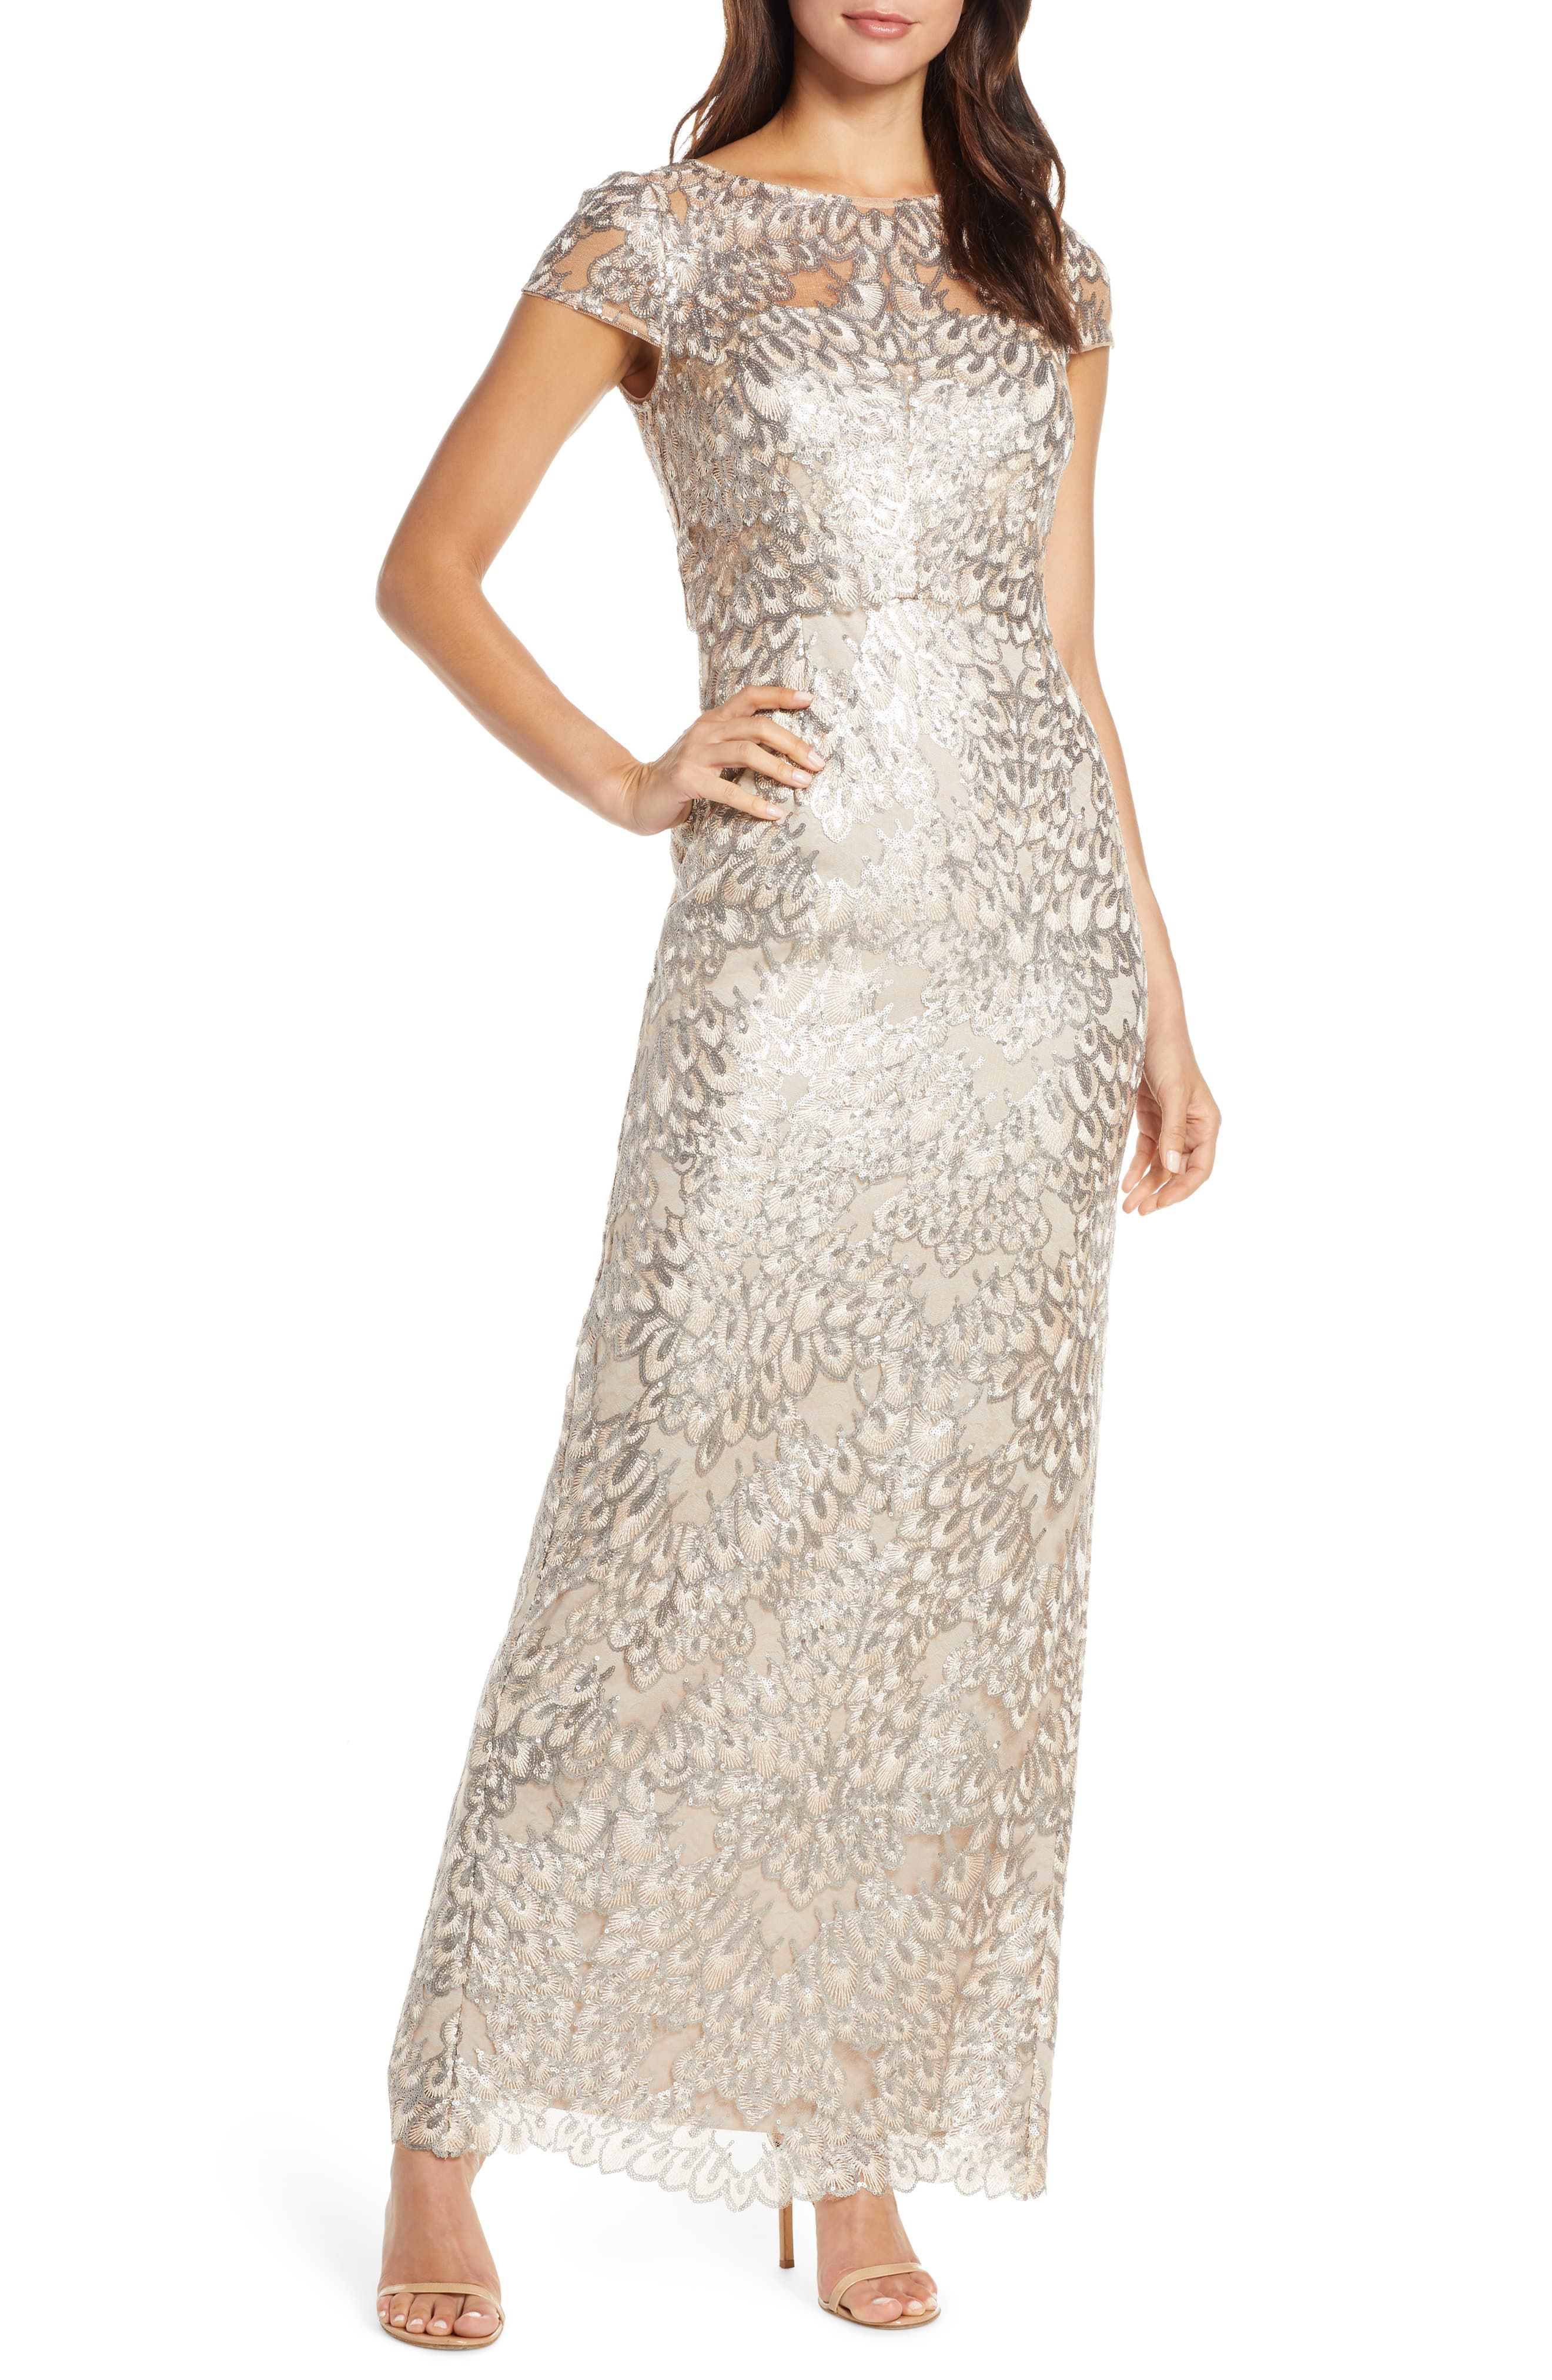 Adrianna Papell Sequin Popover Column Gown Available At Nordstrom Column Gown Women S Fashion Dresses Trending Dresses [ 4048 x 2640 Pixel ]